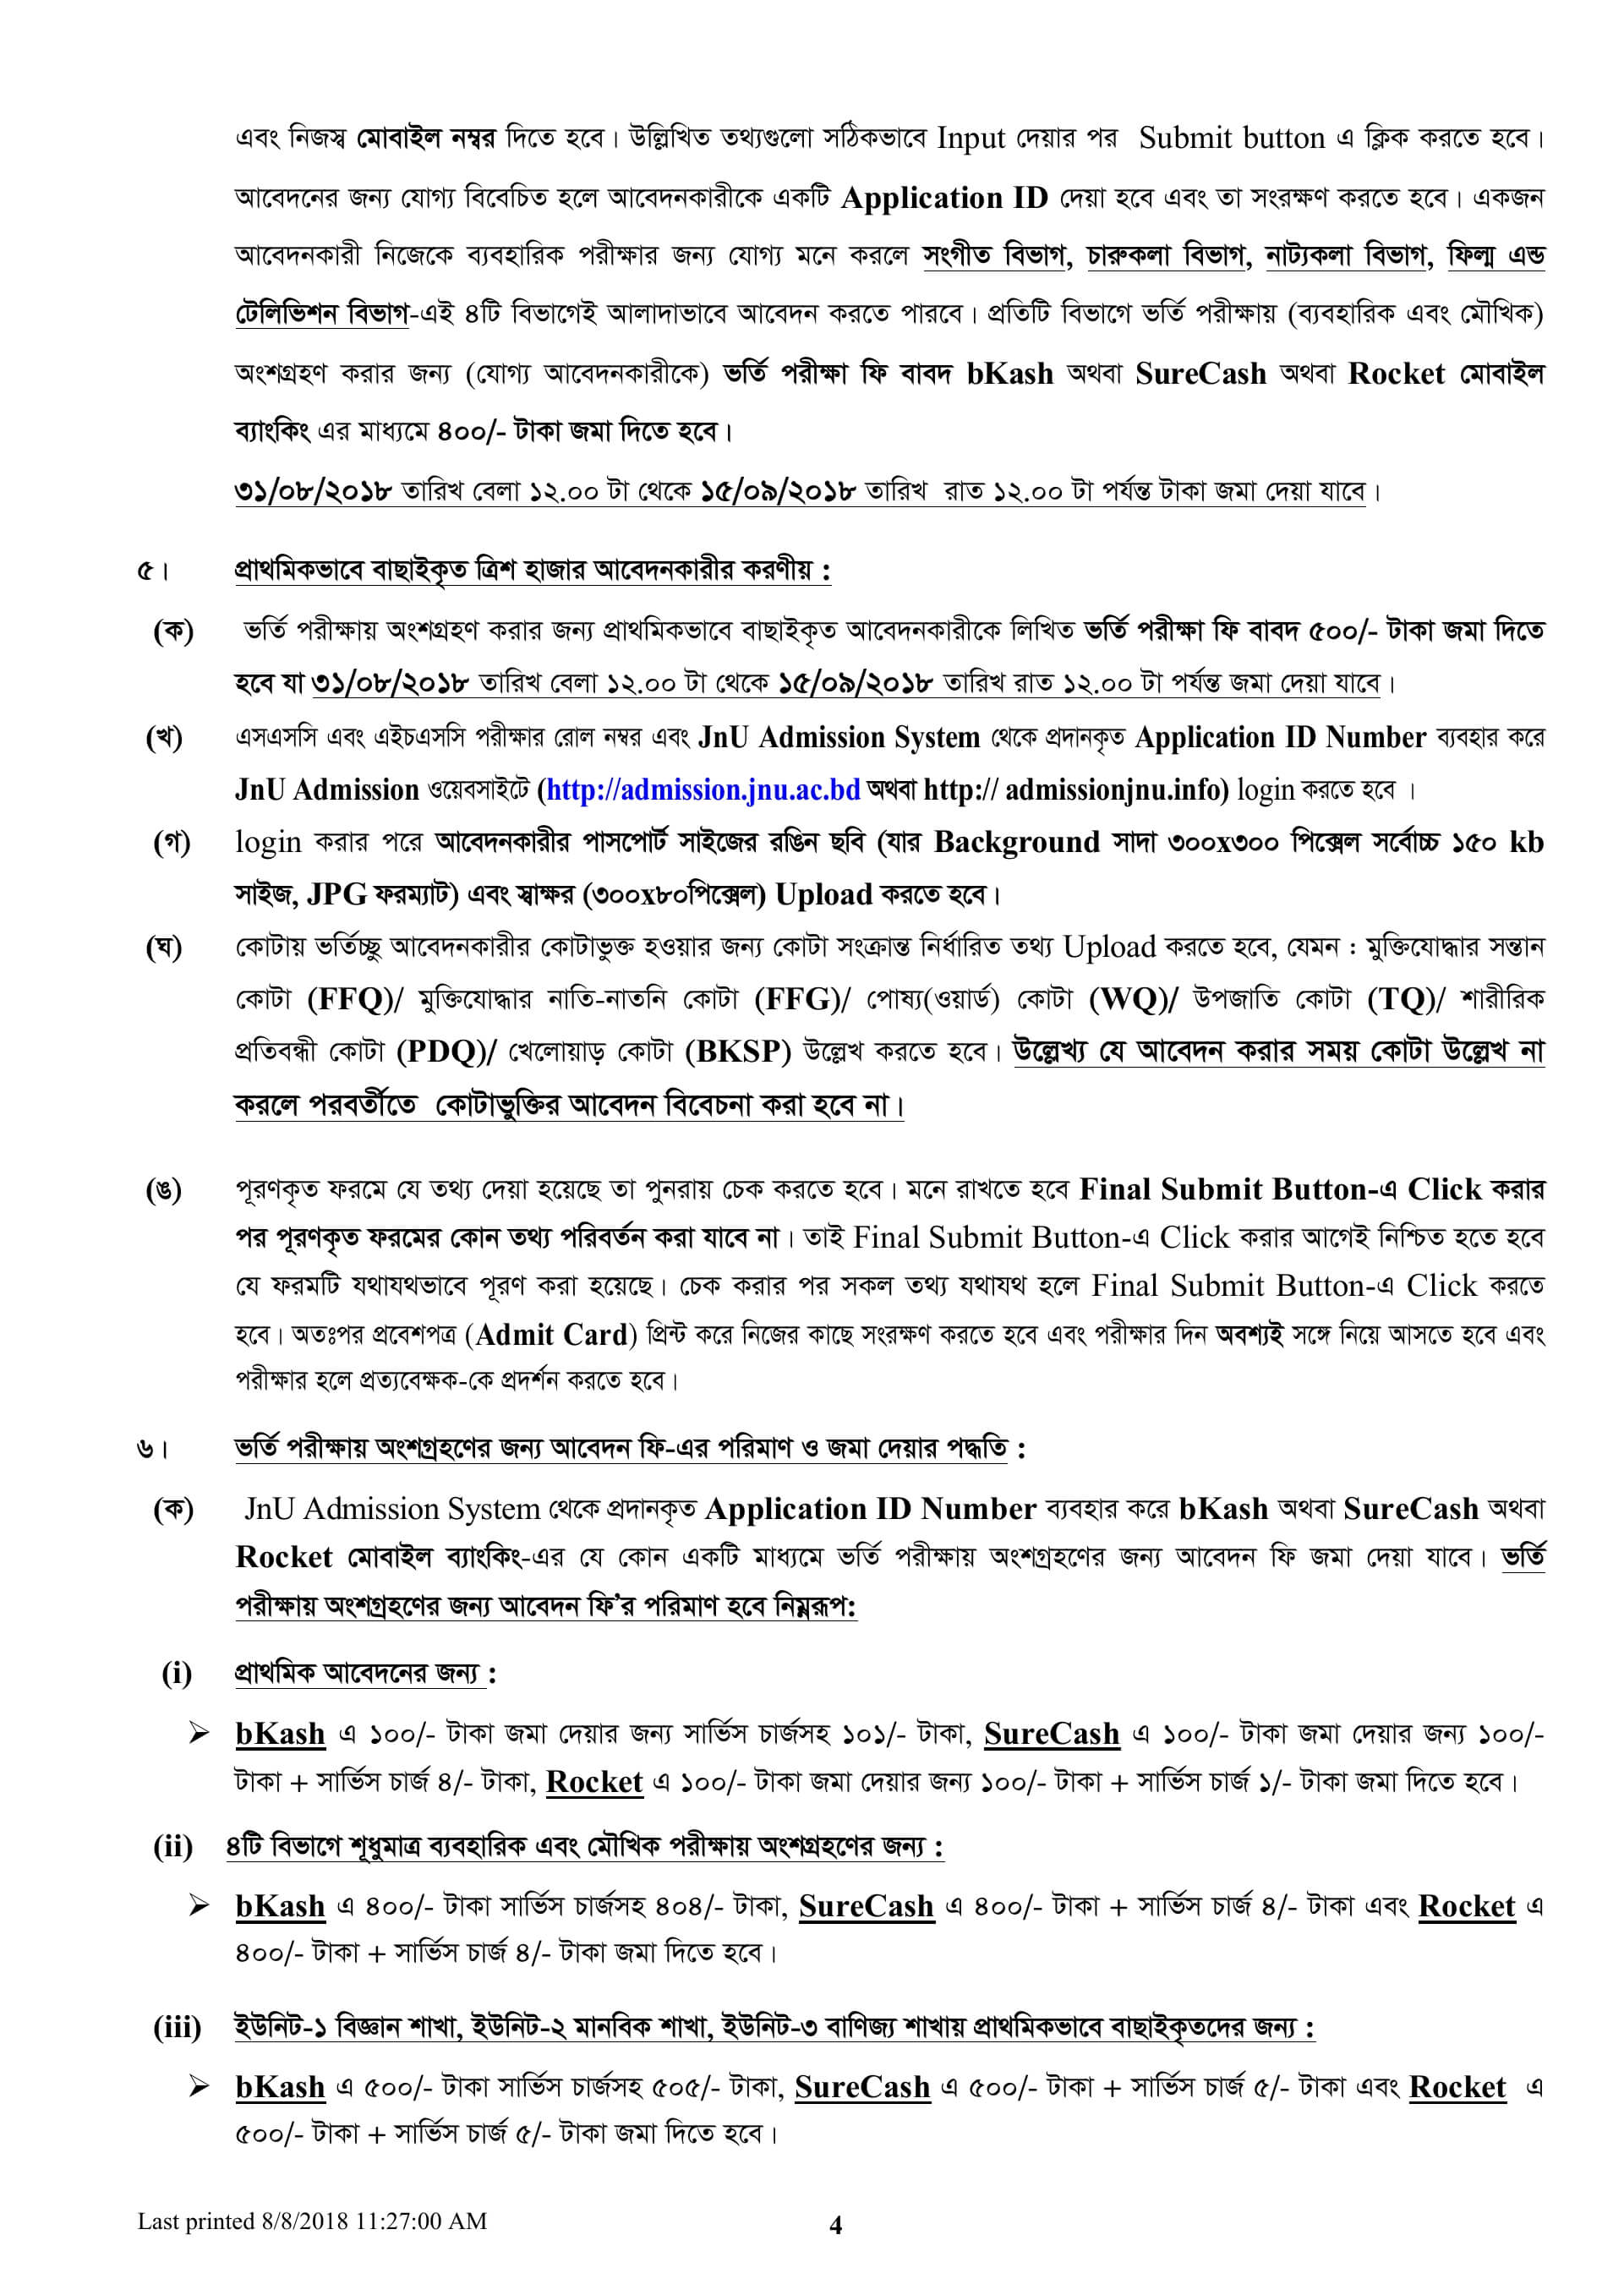 Jagannath University Admission Guideline-3